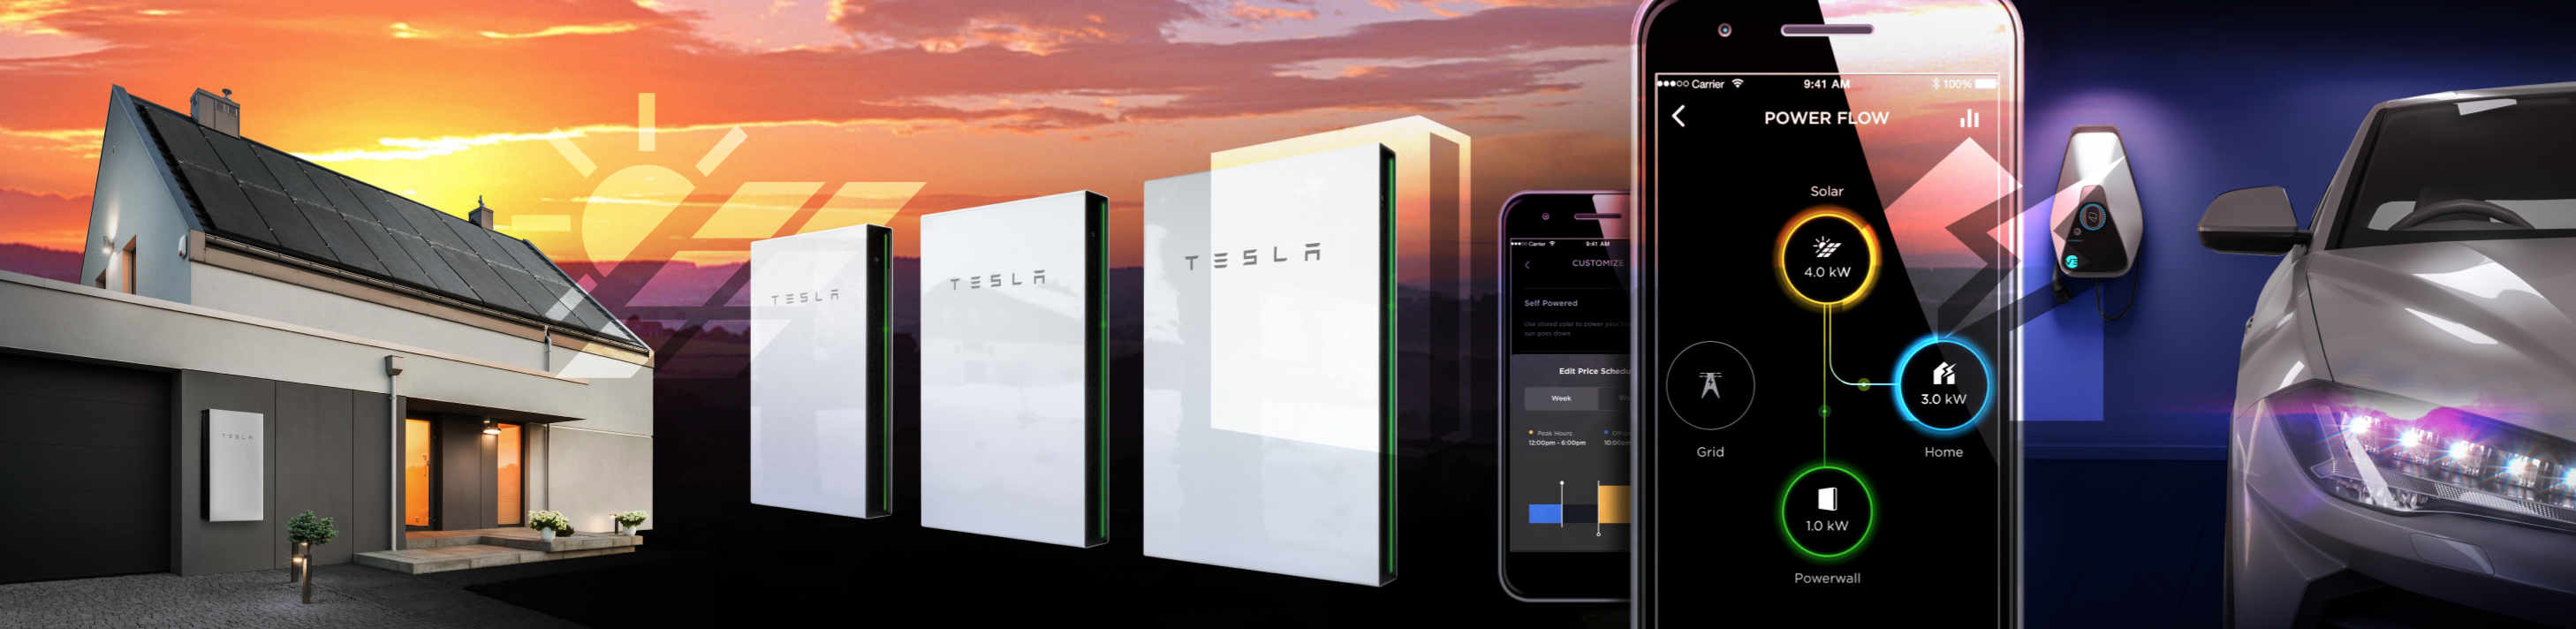 collage - Tesla Powerwall